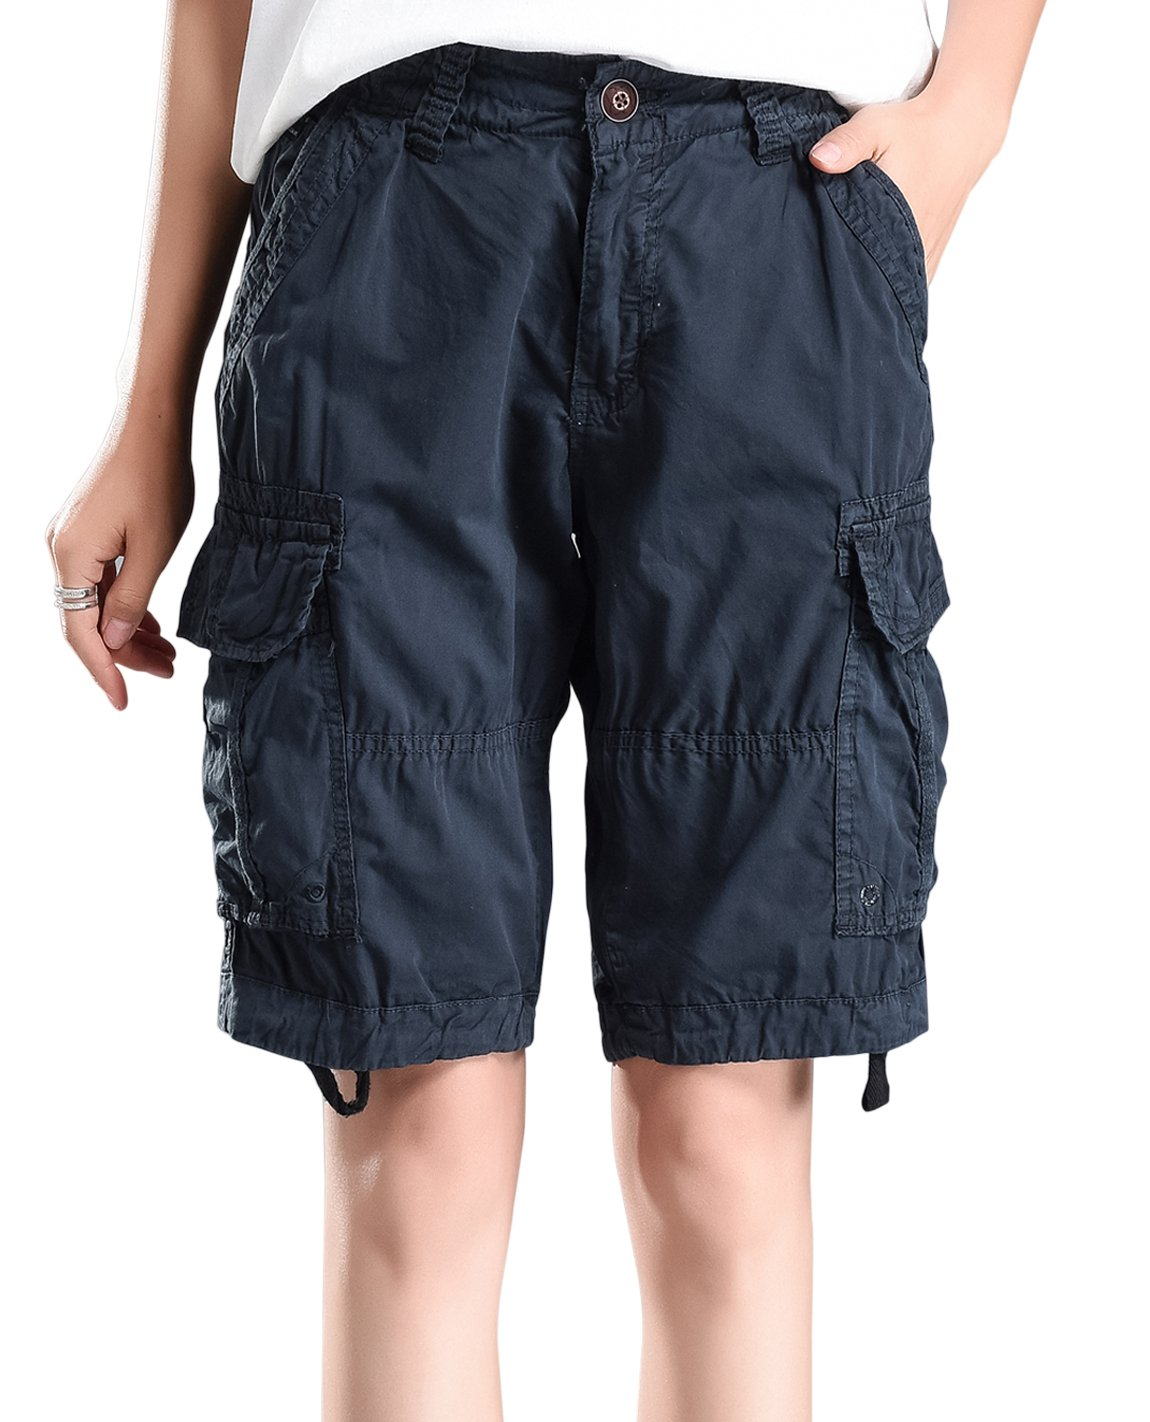 HOW'ON Women's Cotton Casual Relaxed Fit Plus Size Multi-Pockets Bermuda Cargo Shorts Dark Blue M